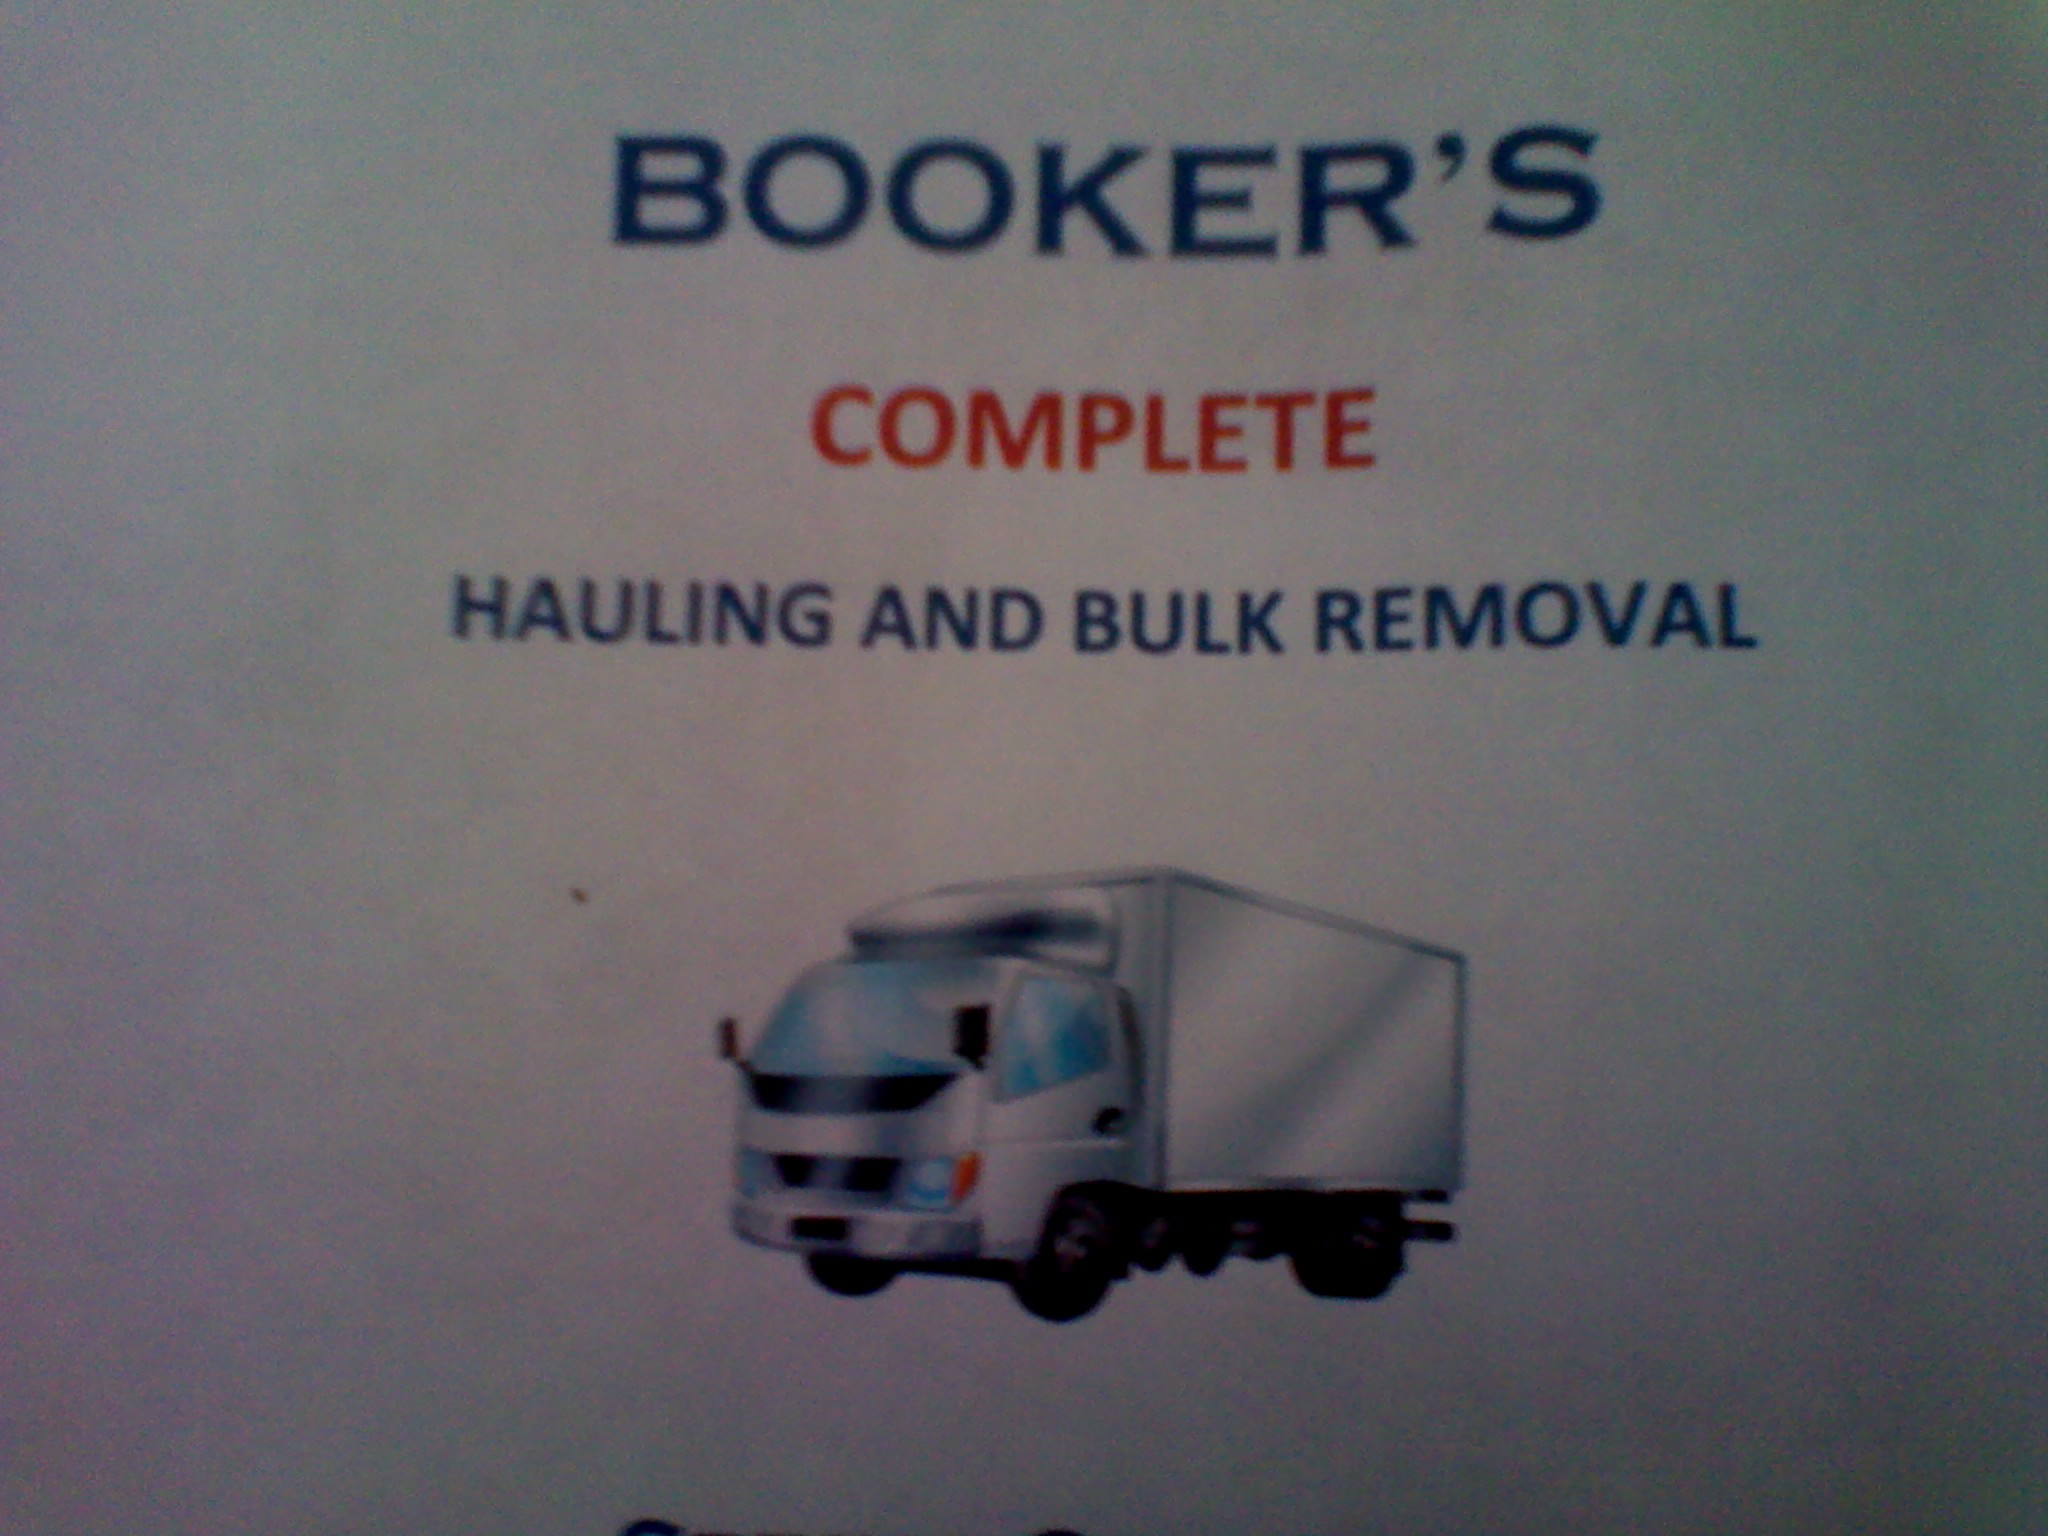 Booker's Complete Hauling